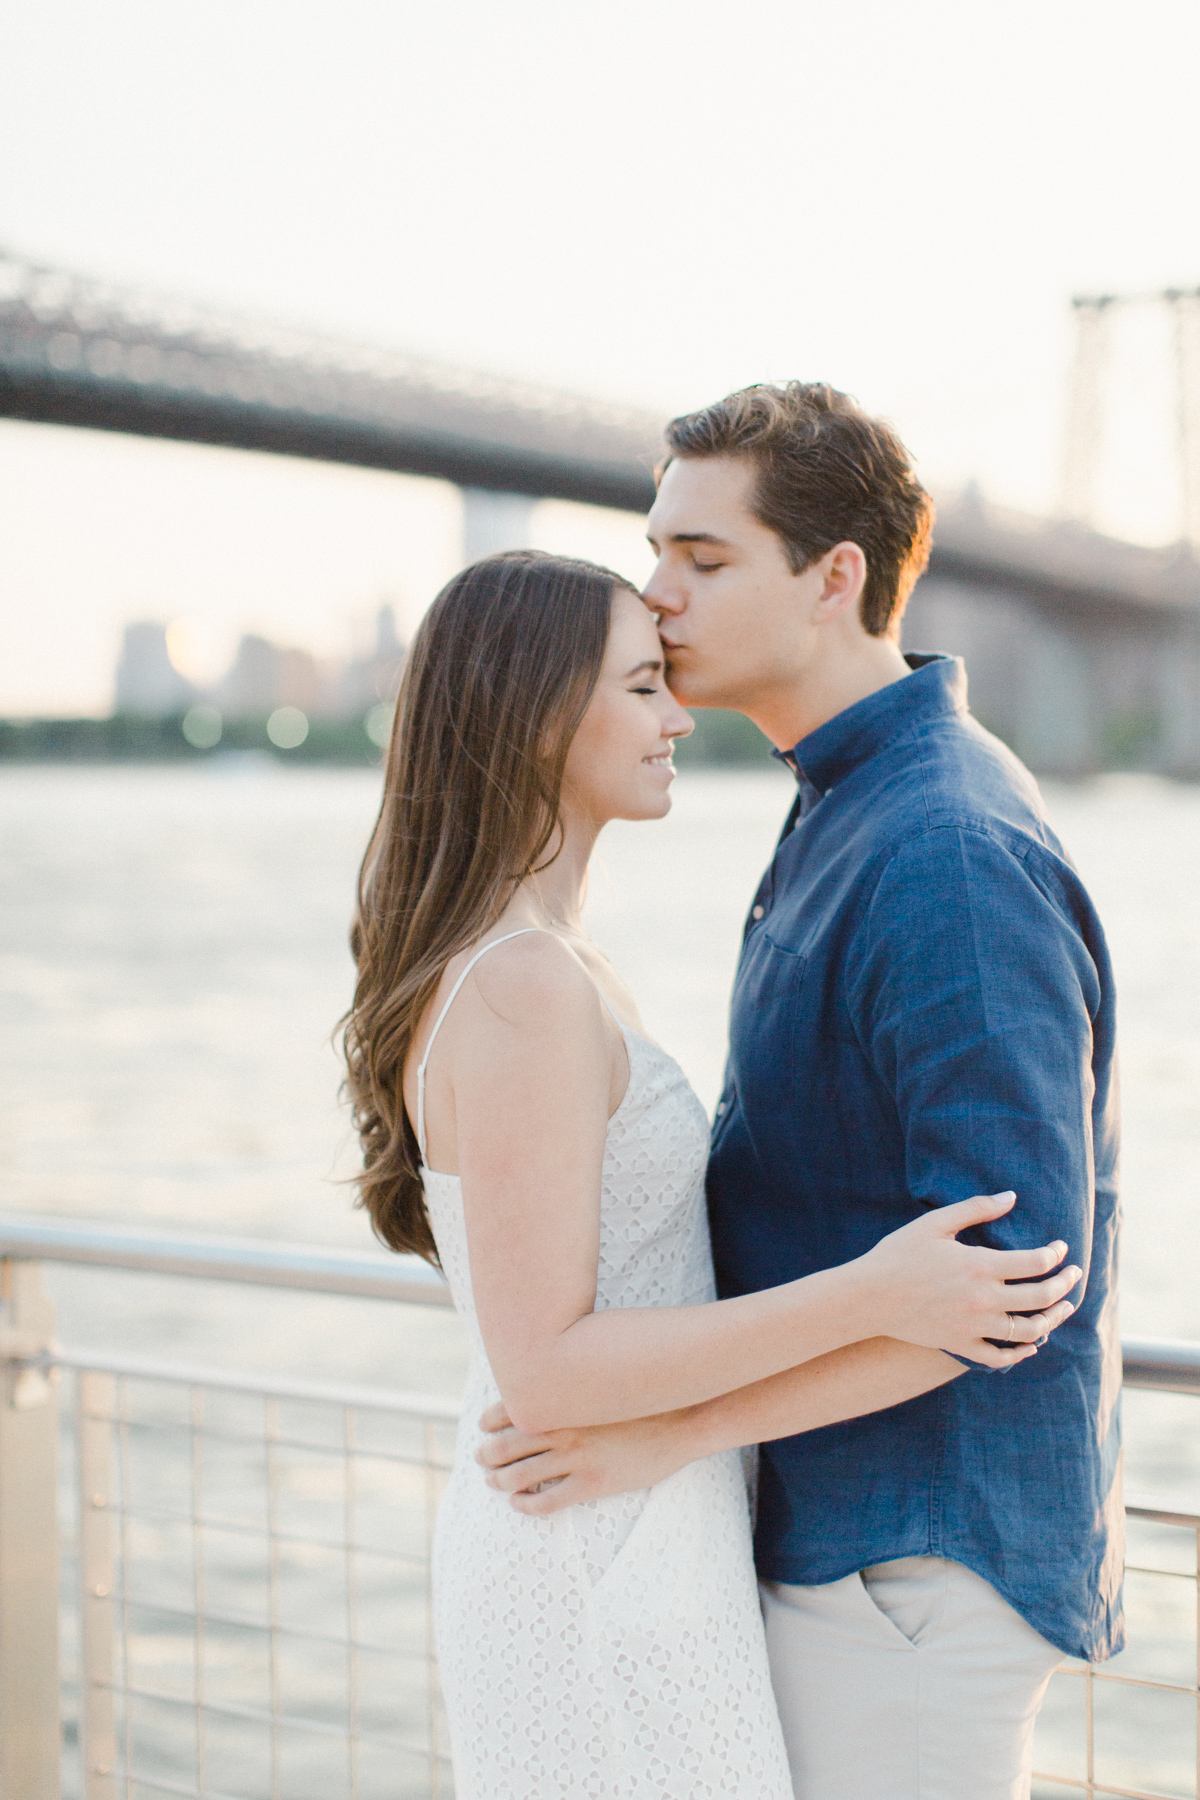 NYC-engagement-Photos-Photographer-Wedding-12.jpg